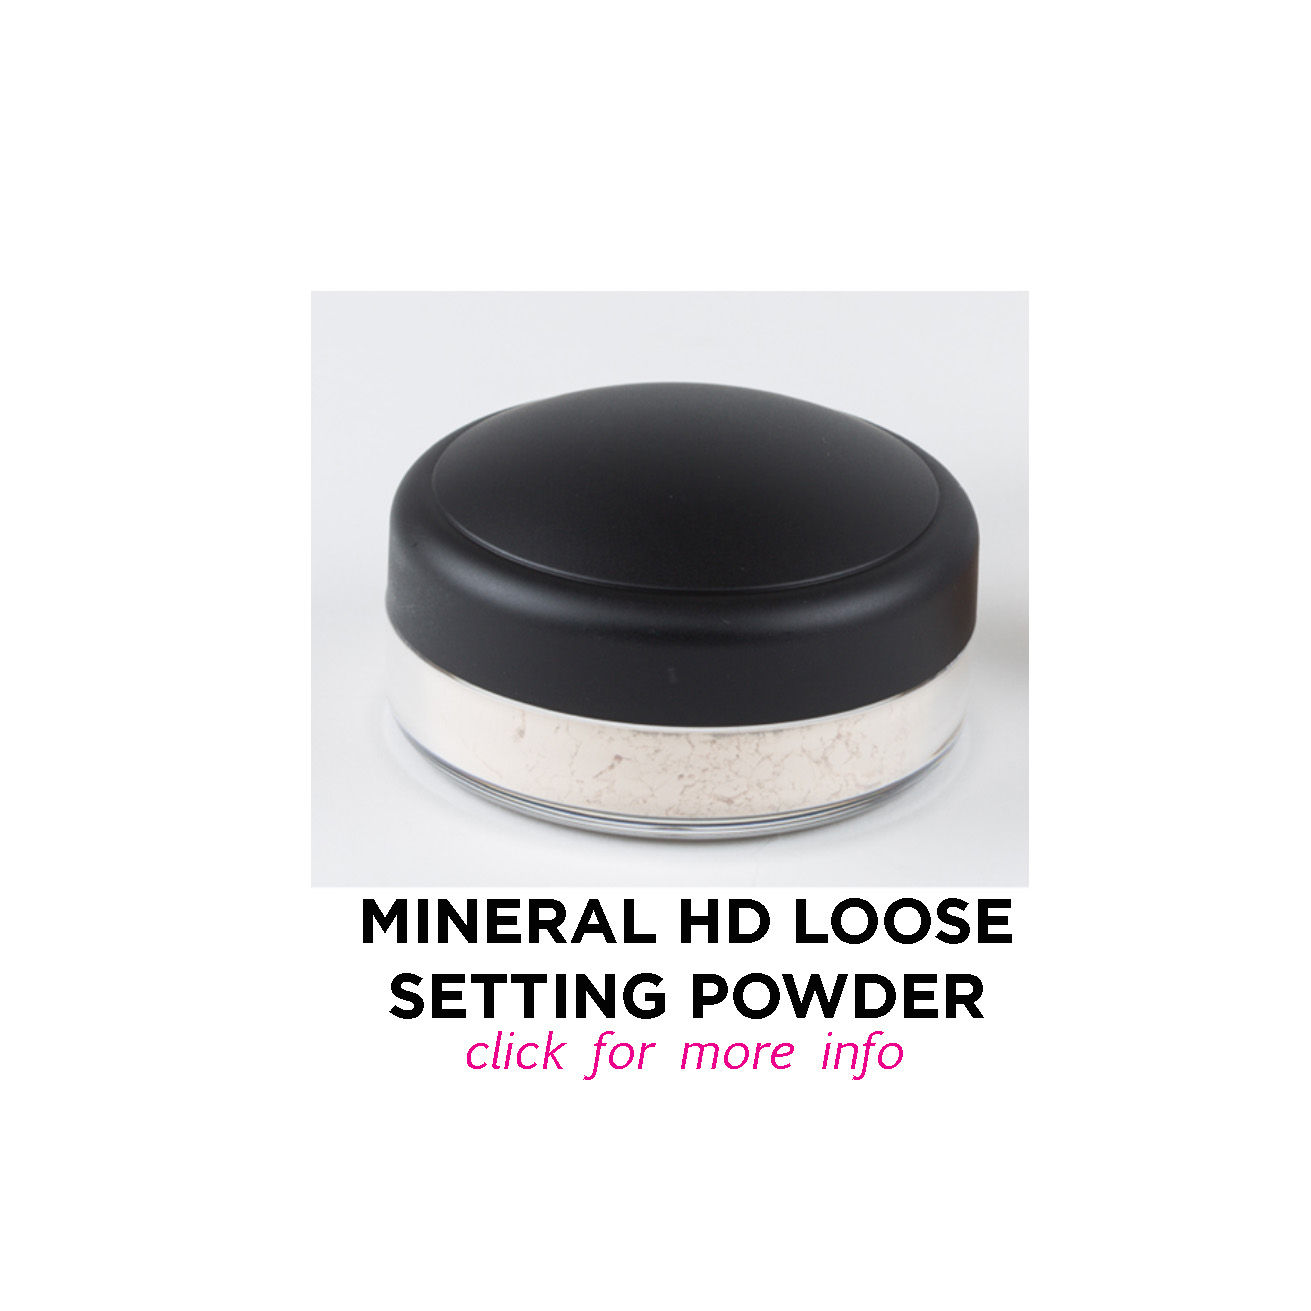 Mineral HD Loose Setting Powder